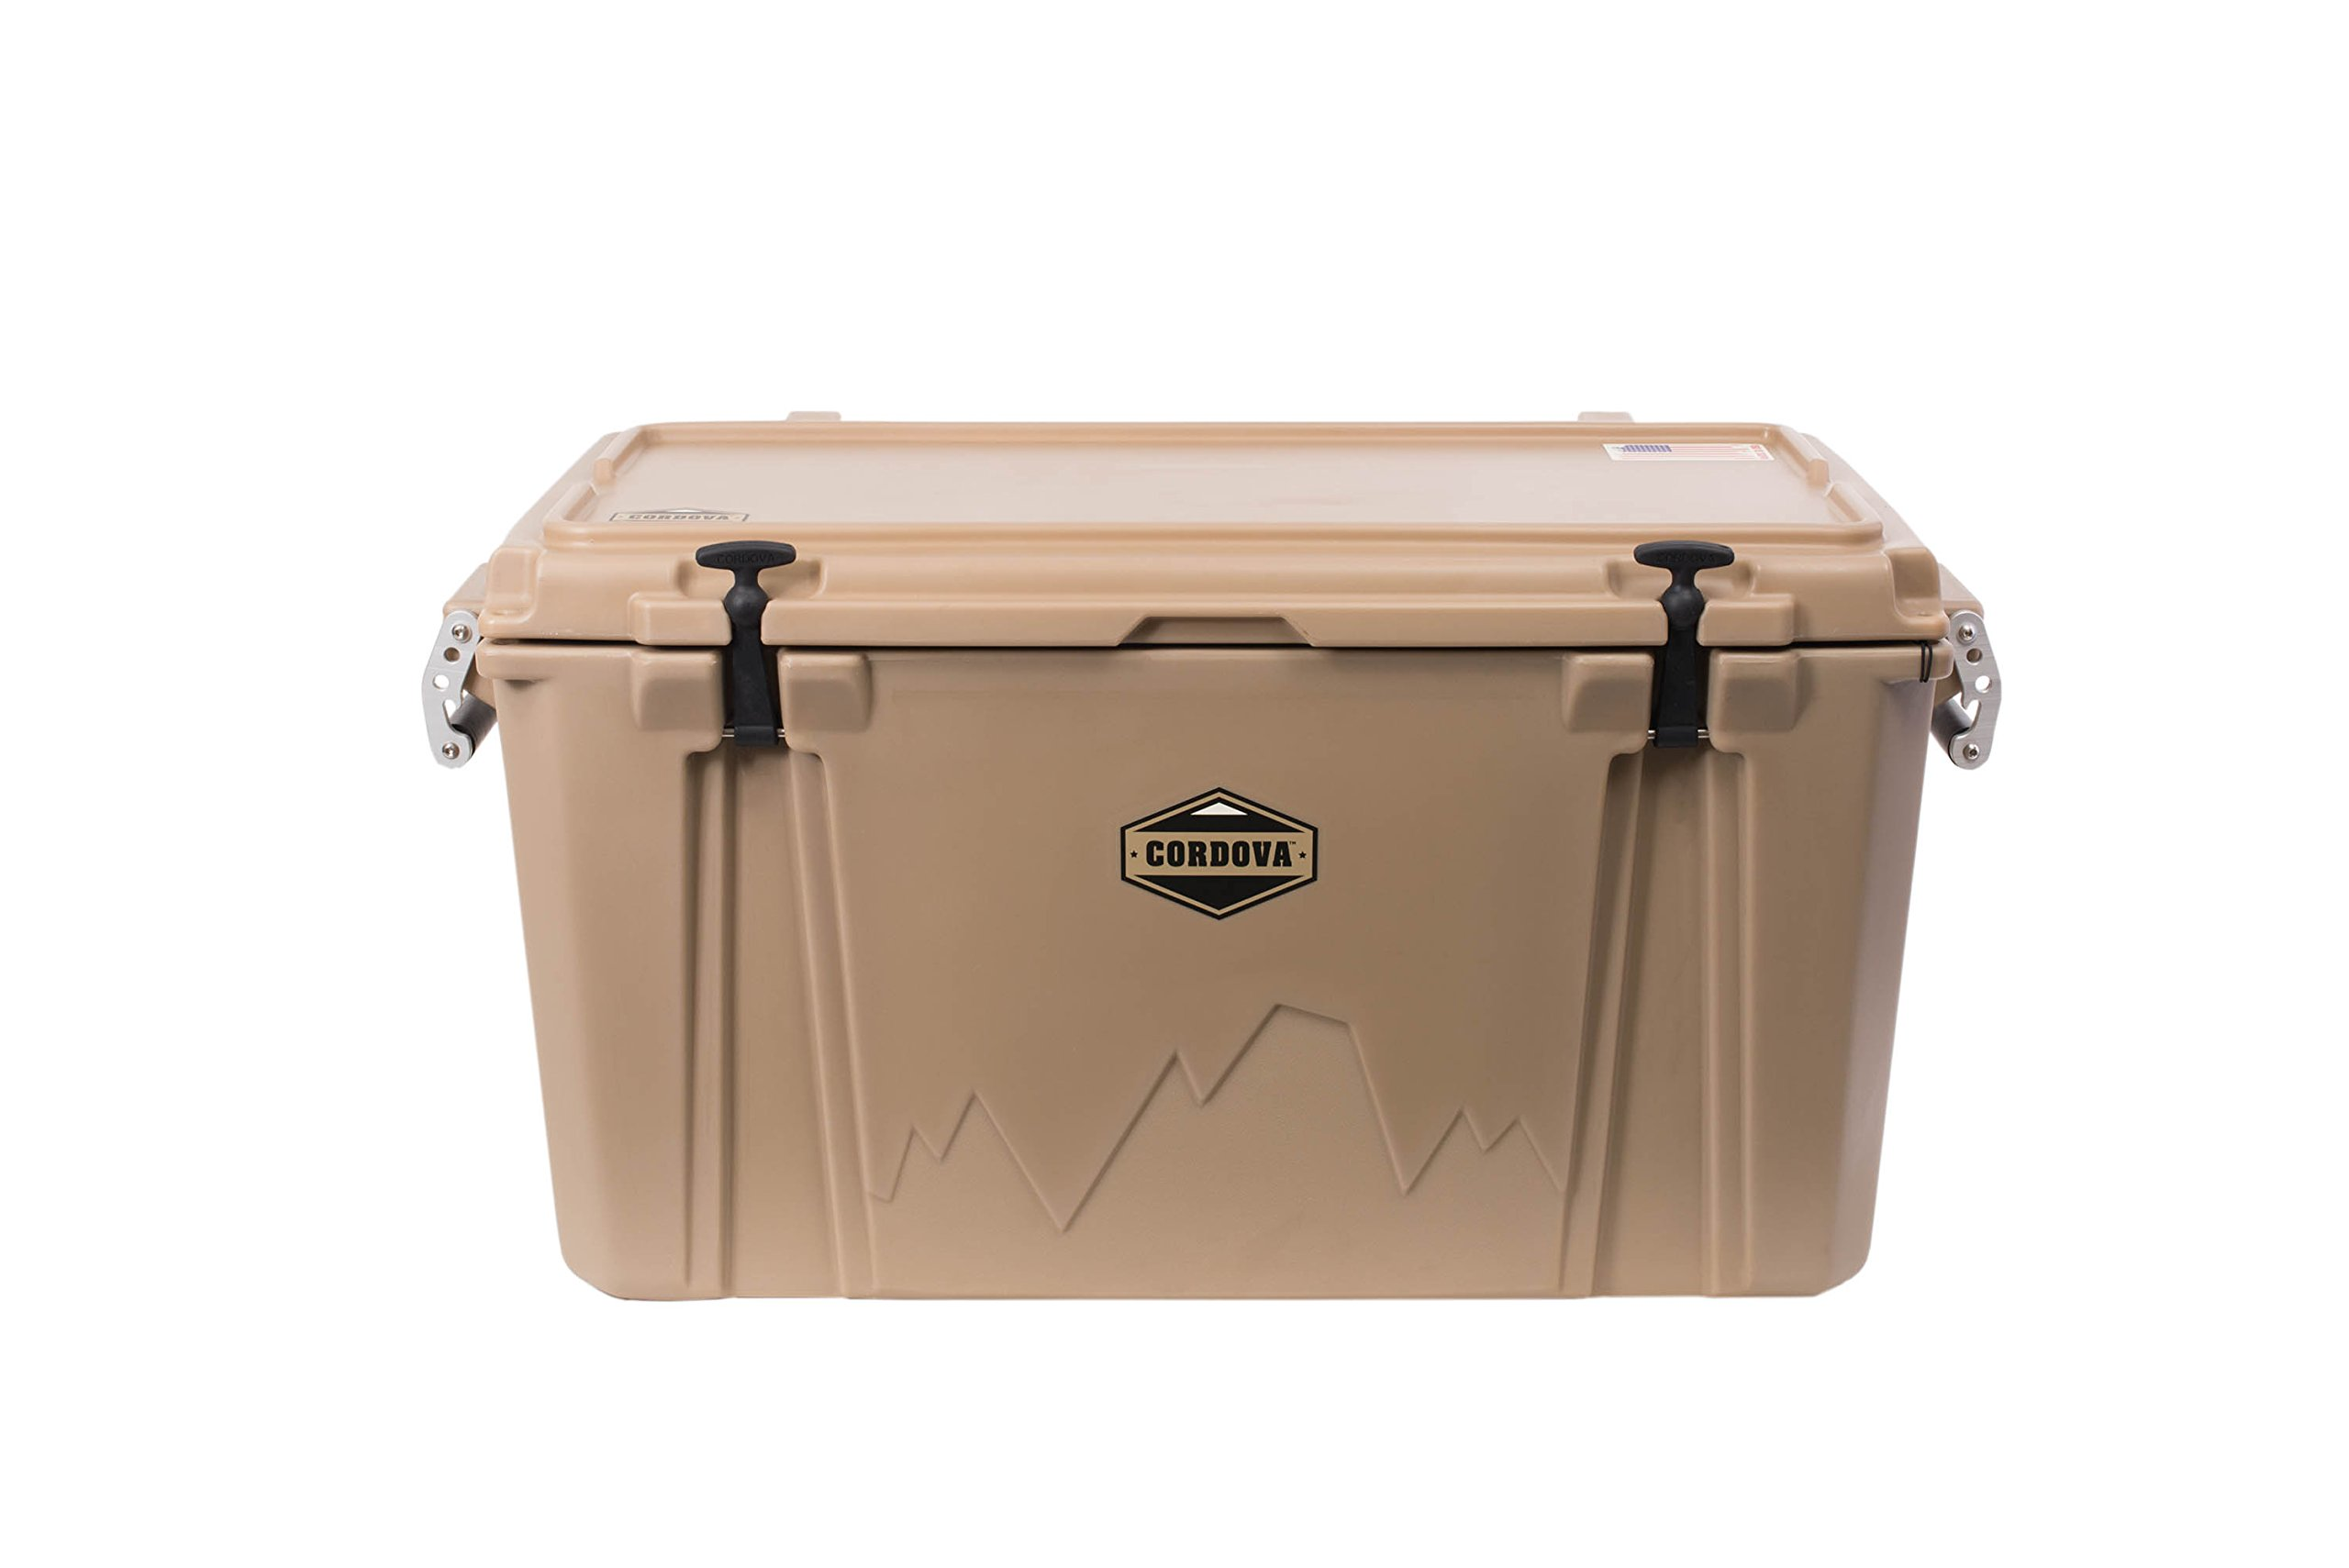 Cordova Coolers 100 Large Cooler - Sand by Cordova Coolers